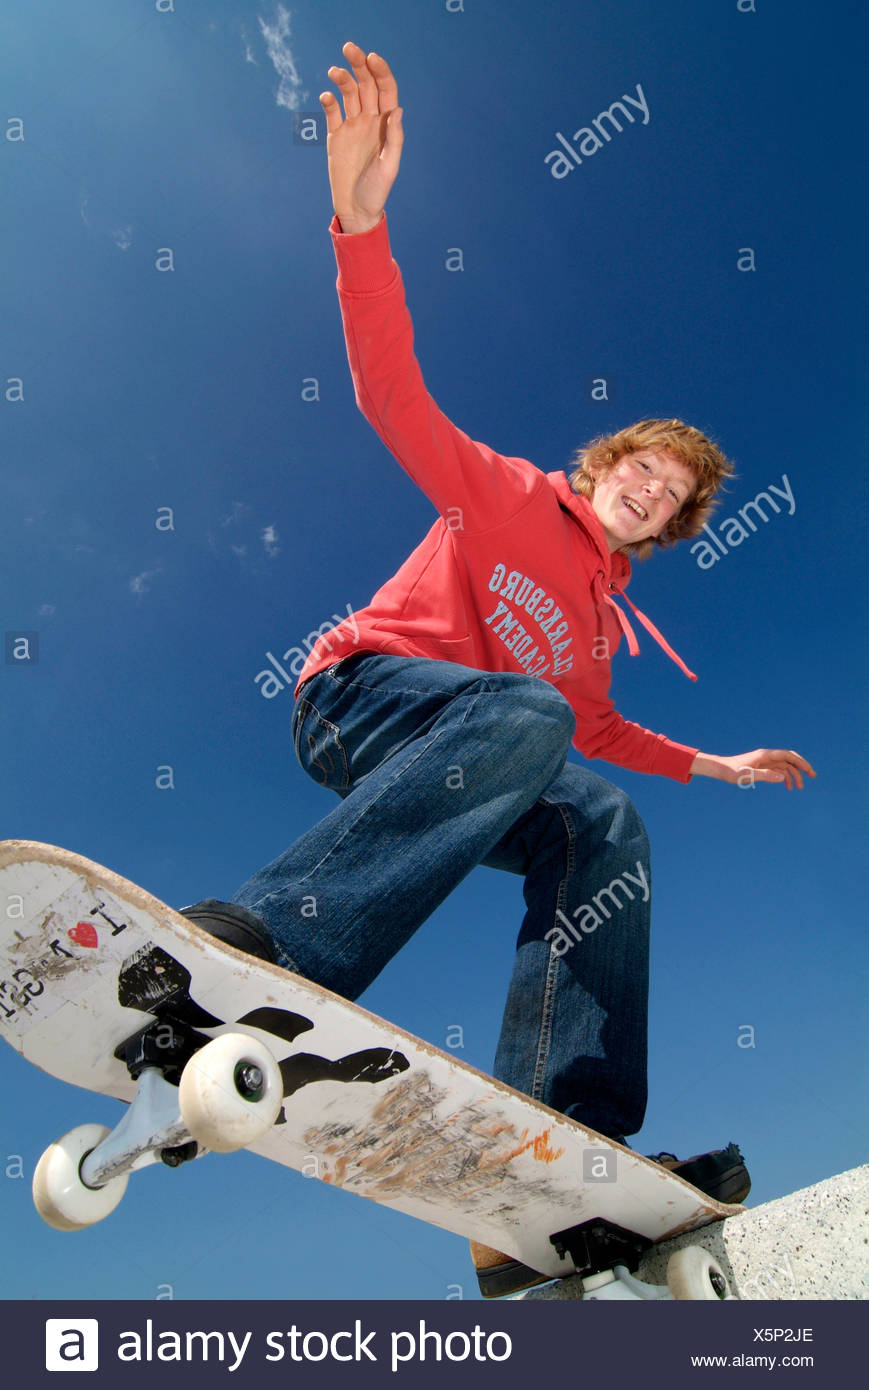 teenager,youth culture,skateboard,skating - Stock Image